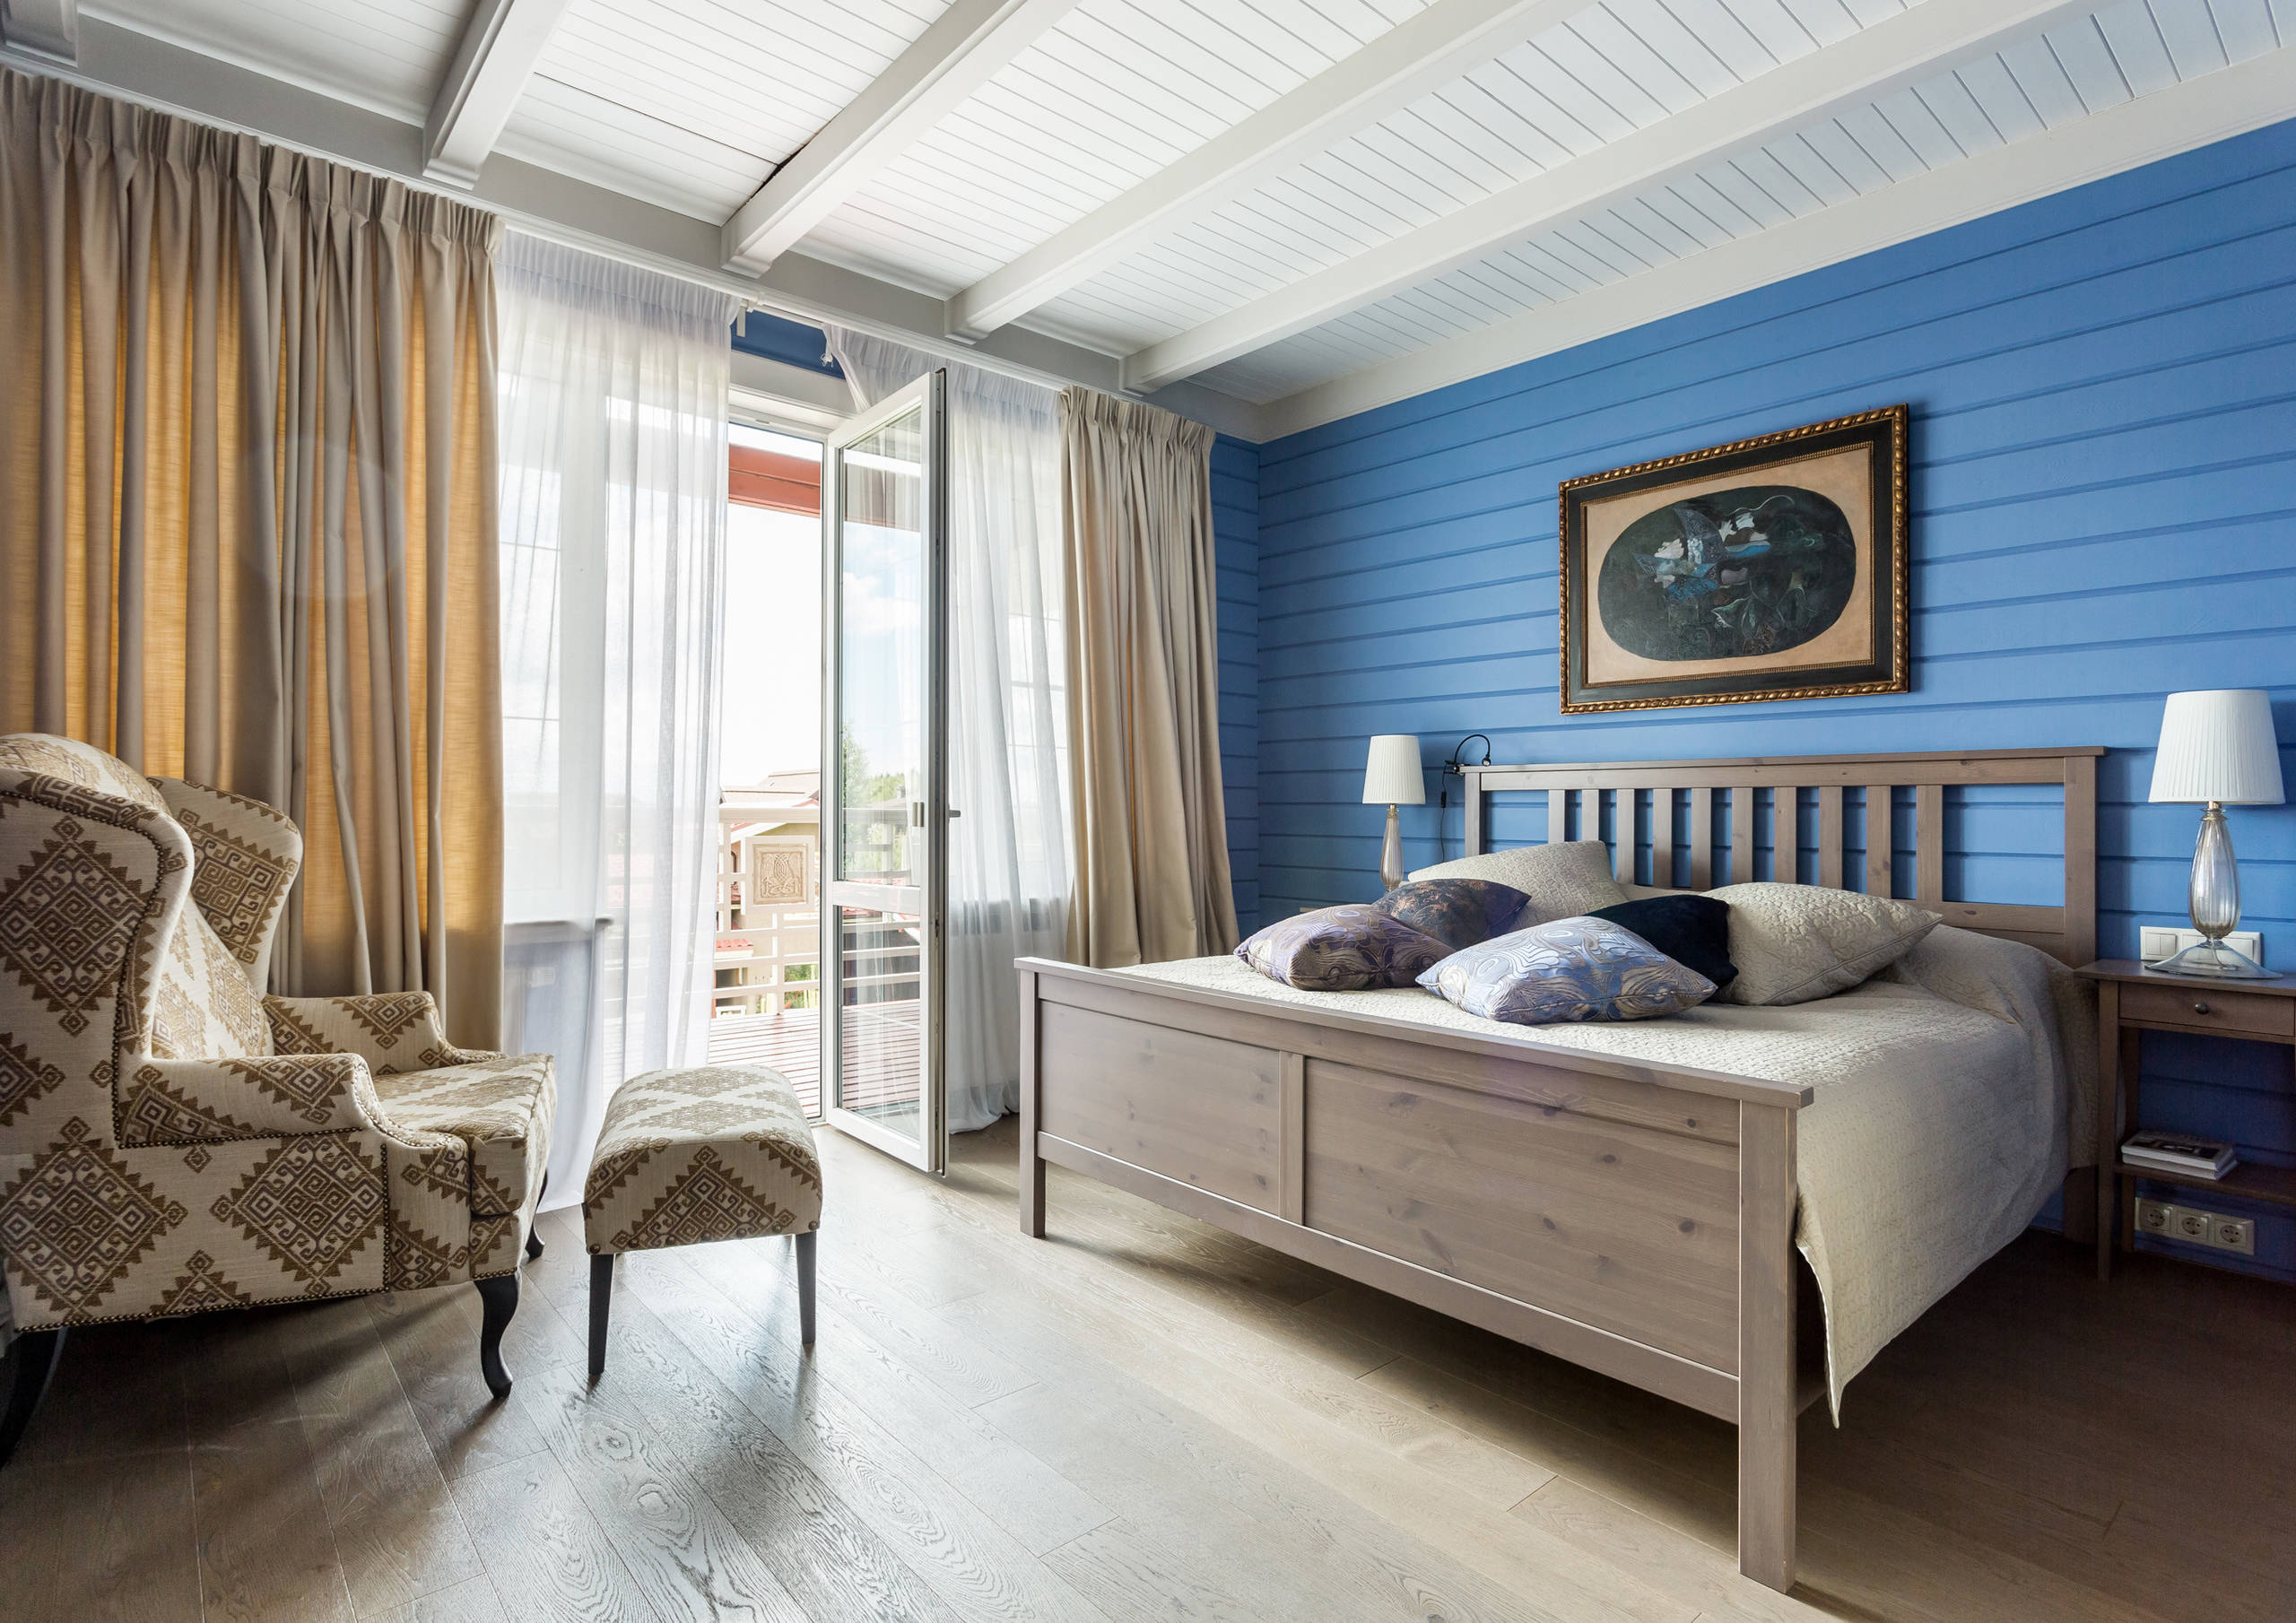 shiplap an ultimate guide on selecting and installing shiplap siding visual hunt. Black Bedroom Furniture Sets. Home Design Ideas